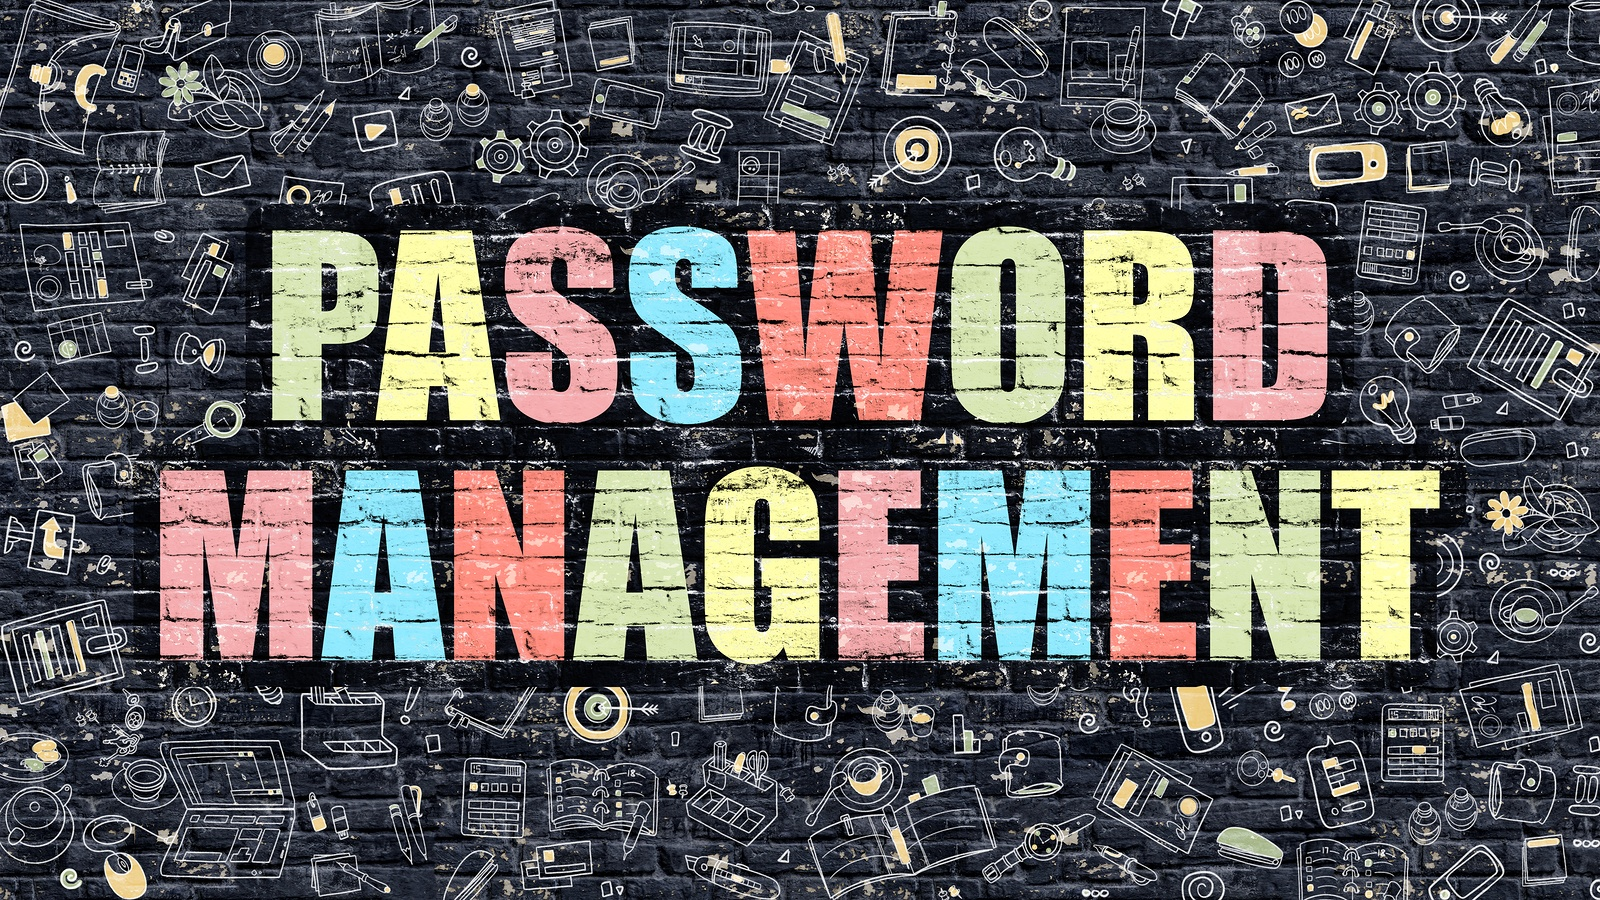 Say goodbye to your easy passwords